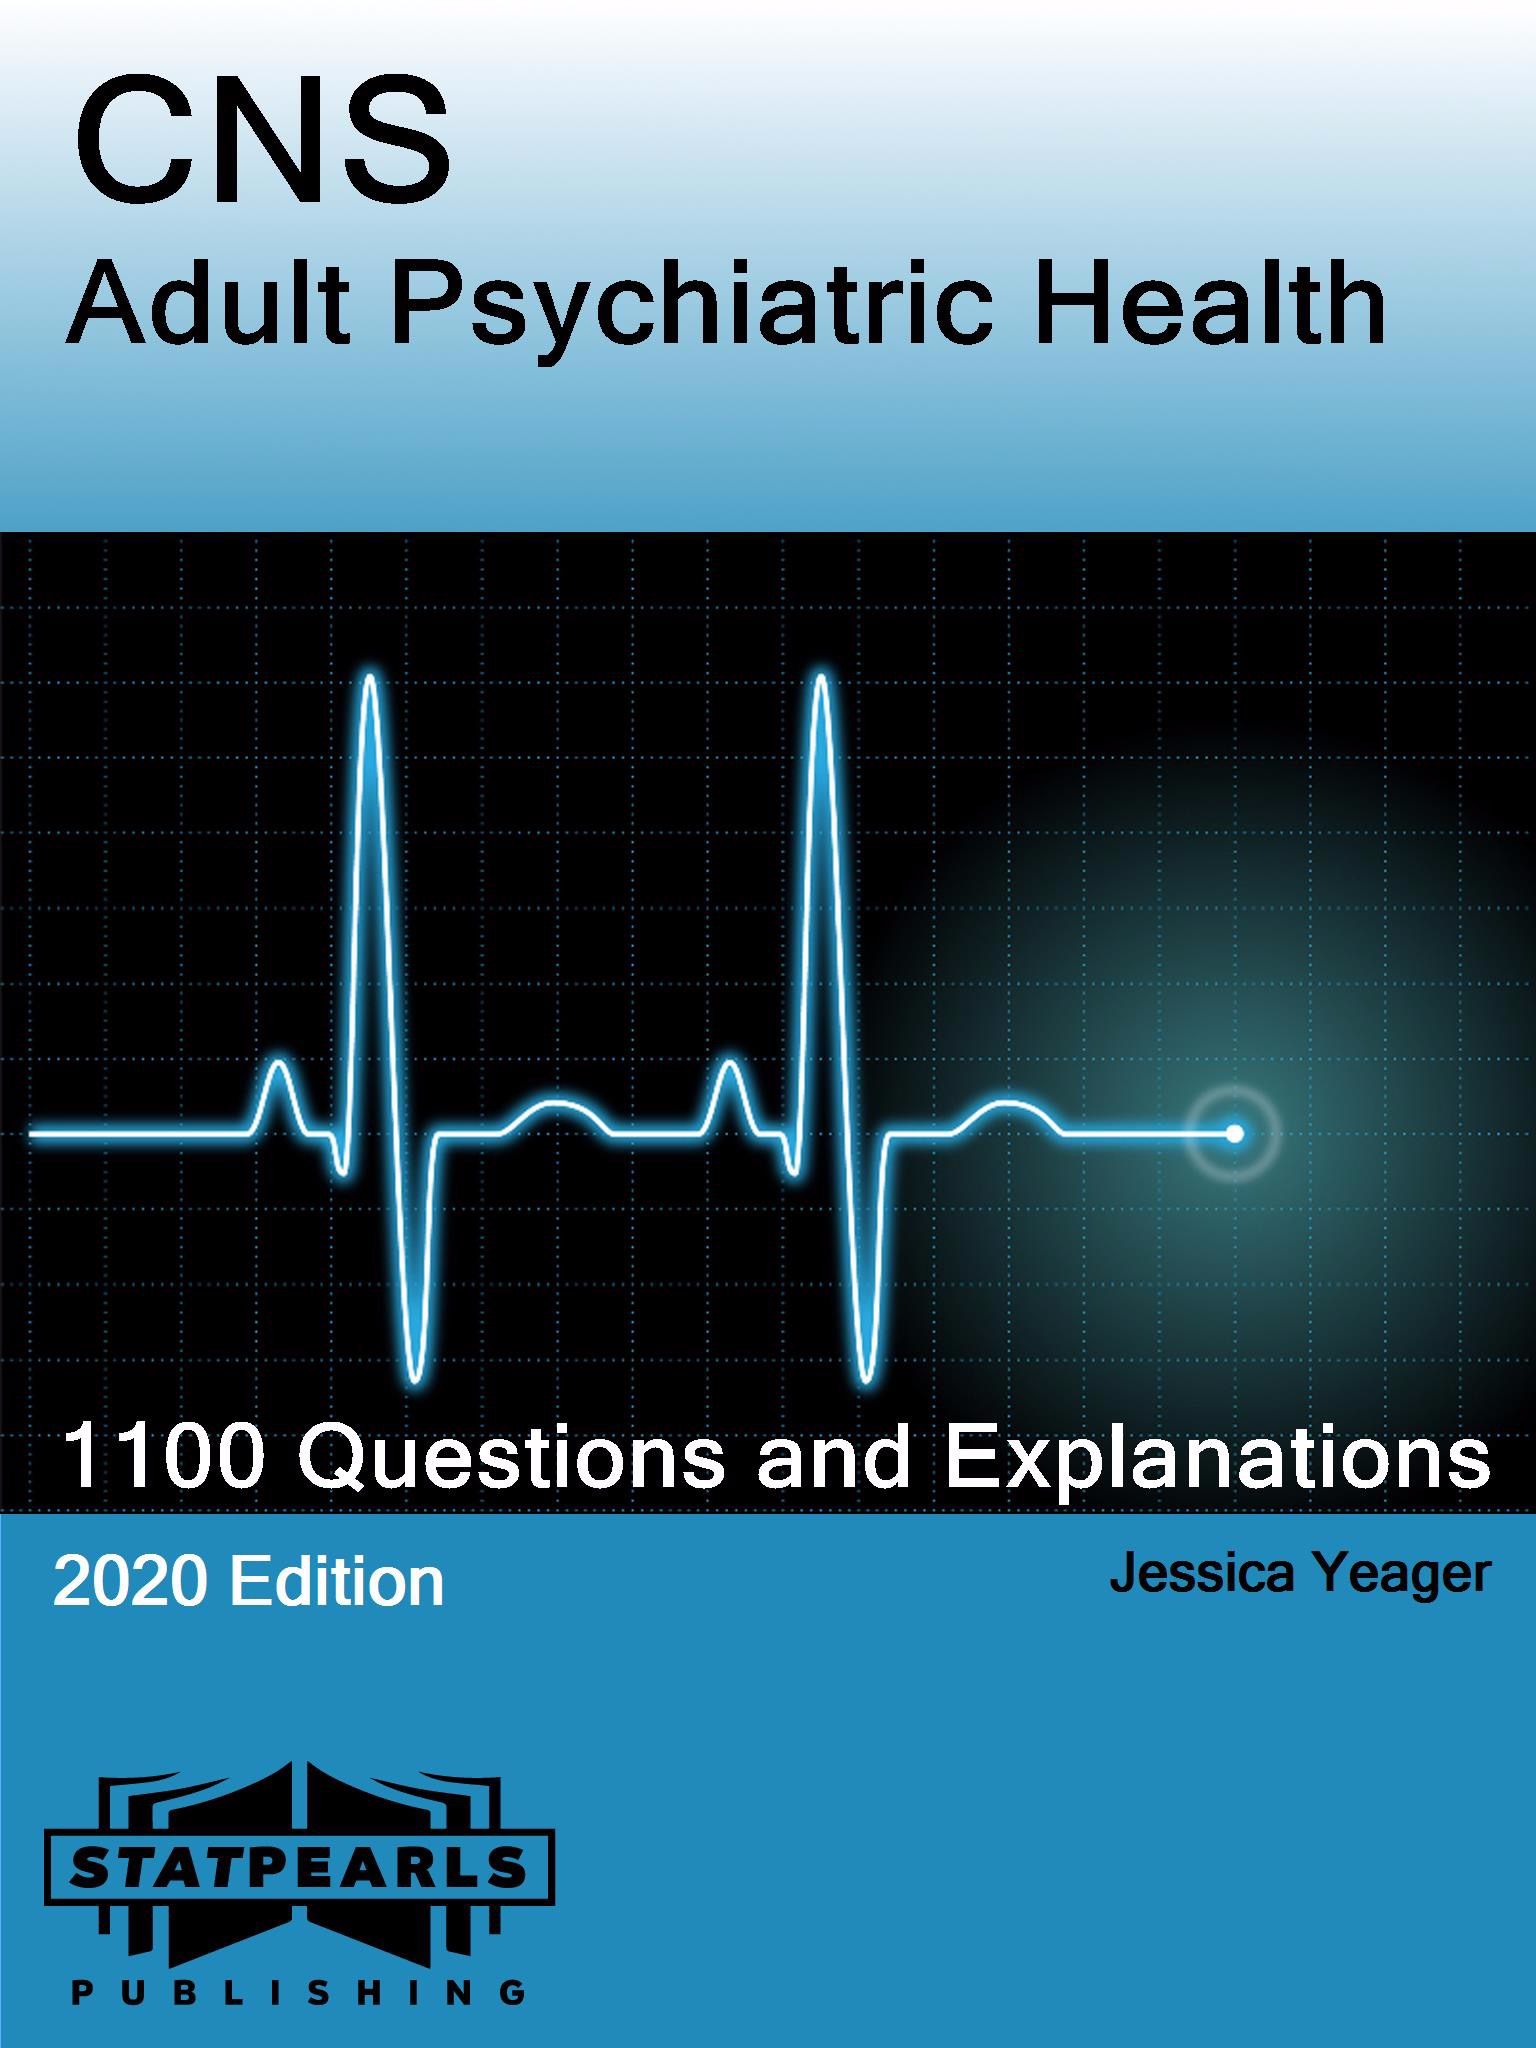 CNS Adult Psychiatric Health